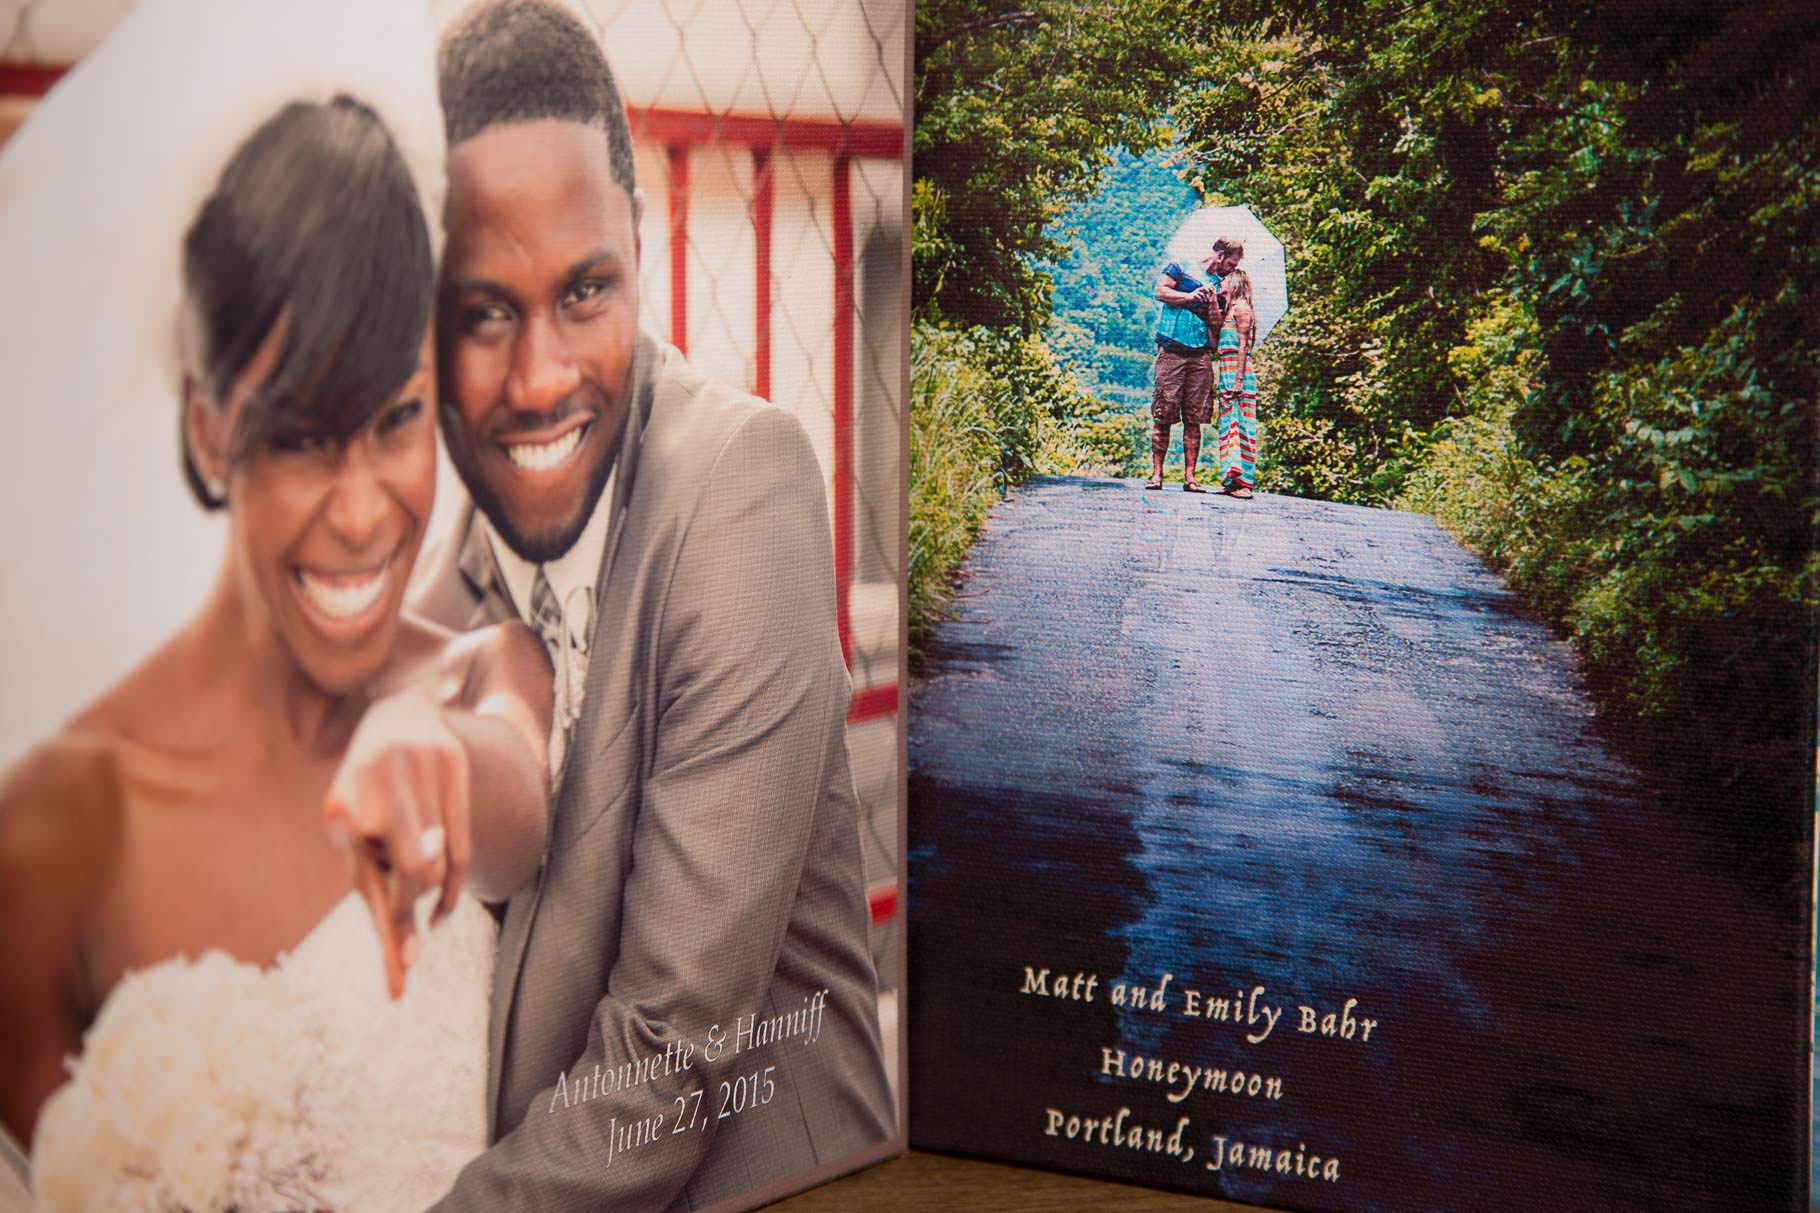 Canvas cover for wedding albums included in wedding packages